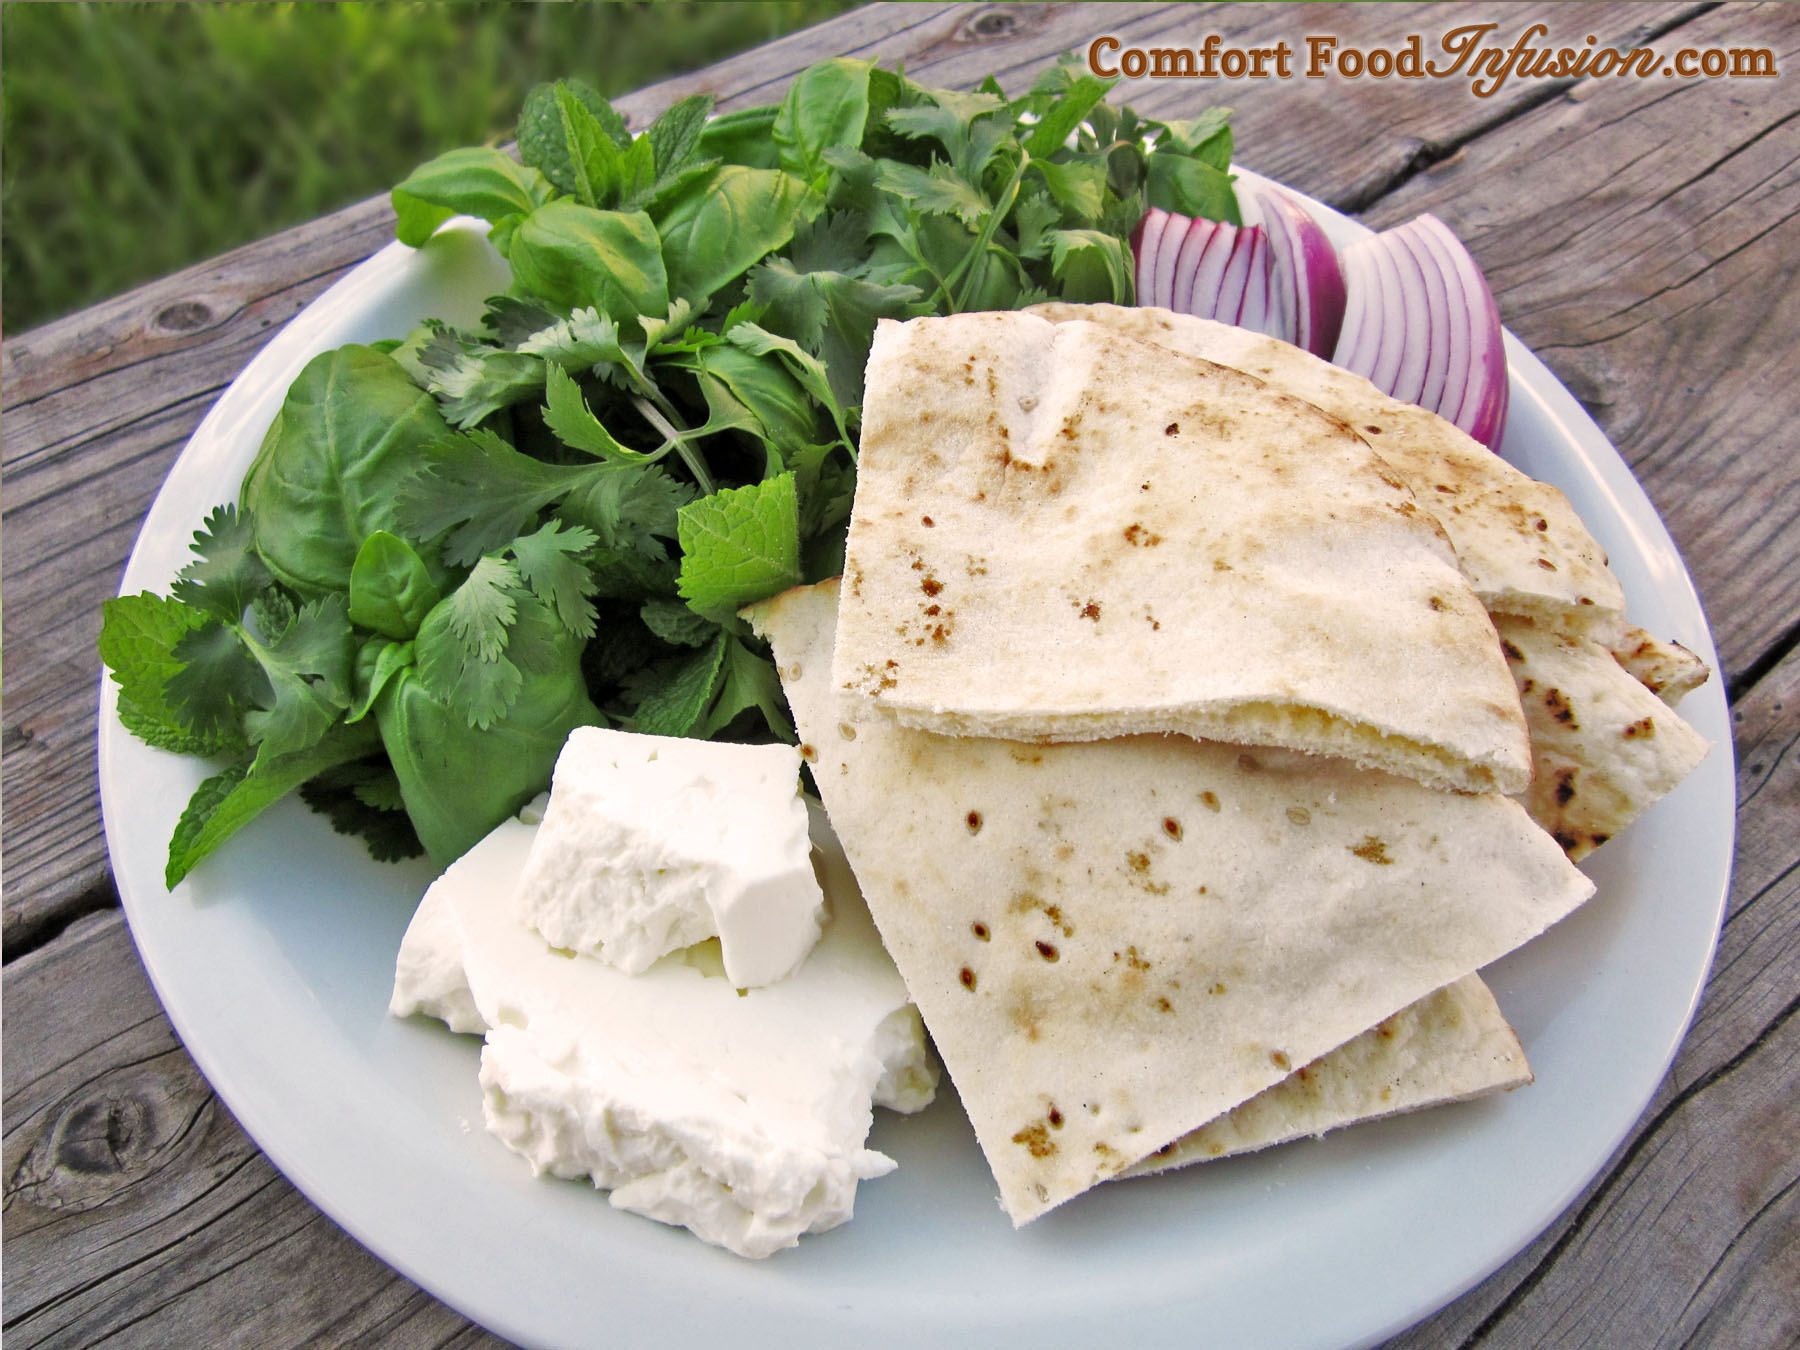 Greens and Feta with Pita